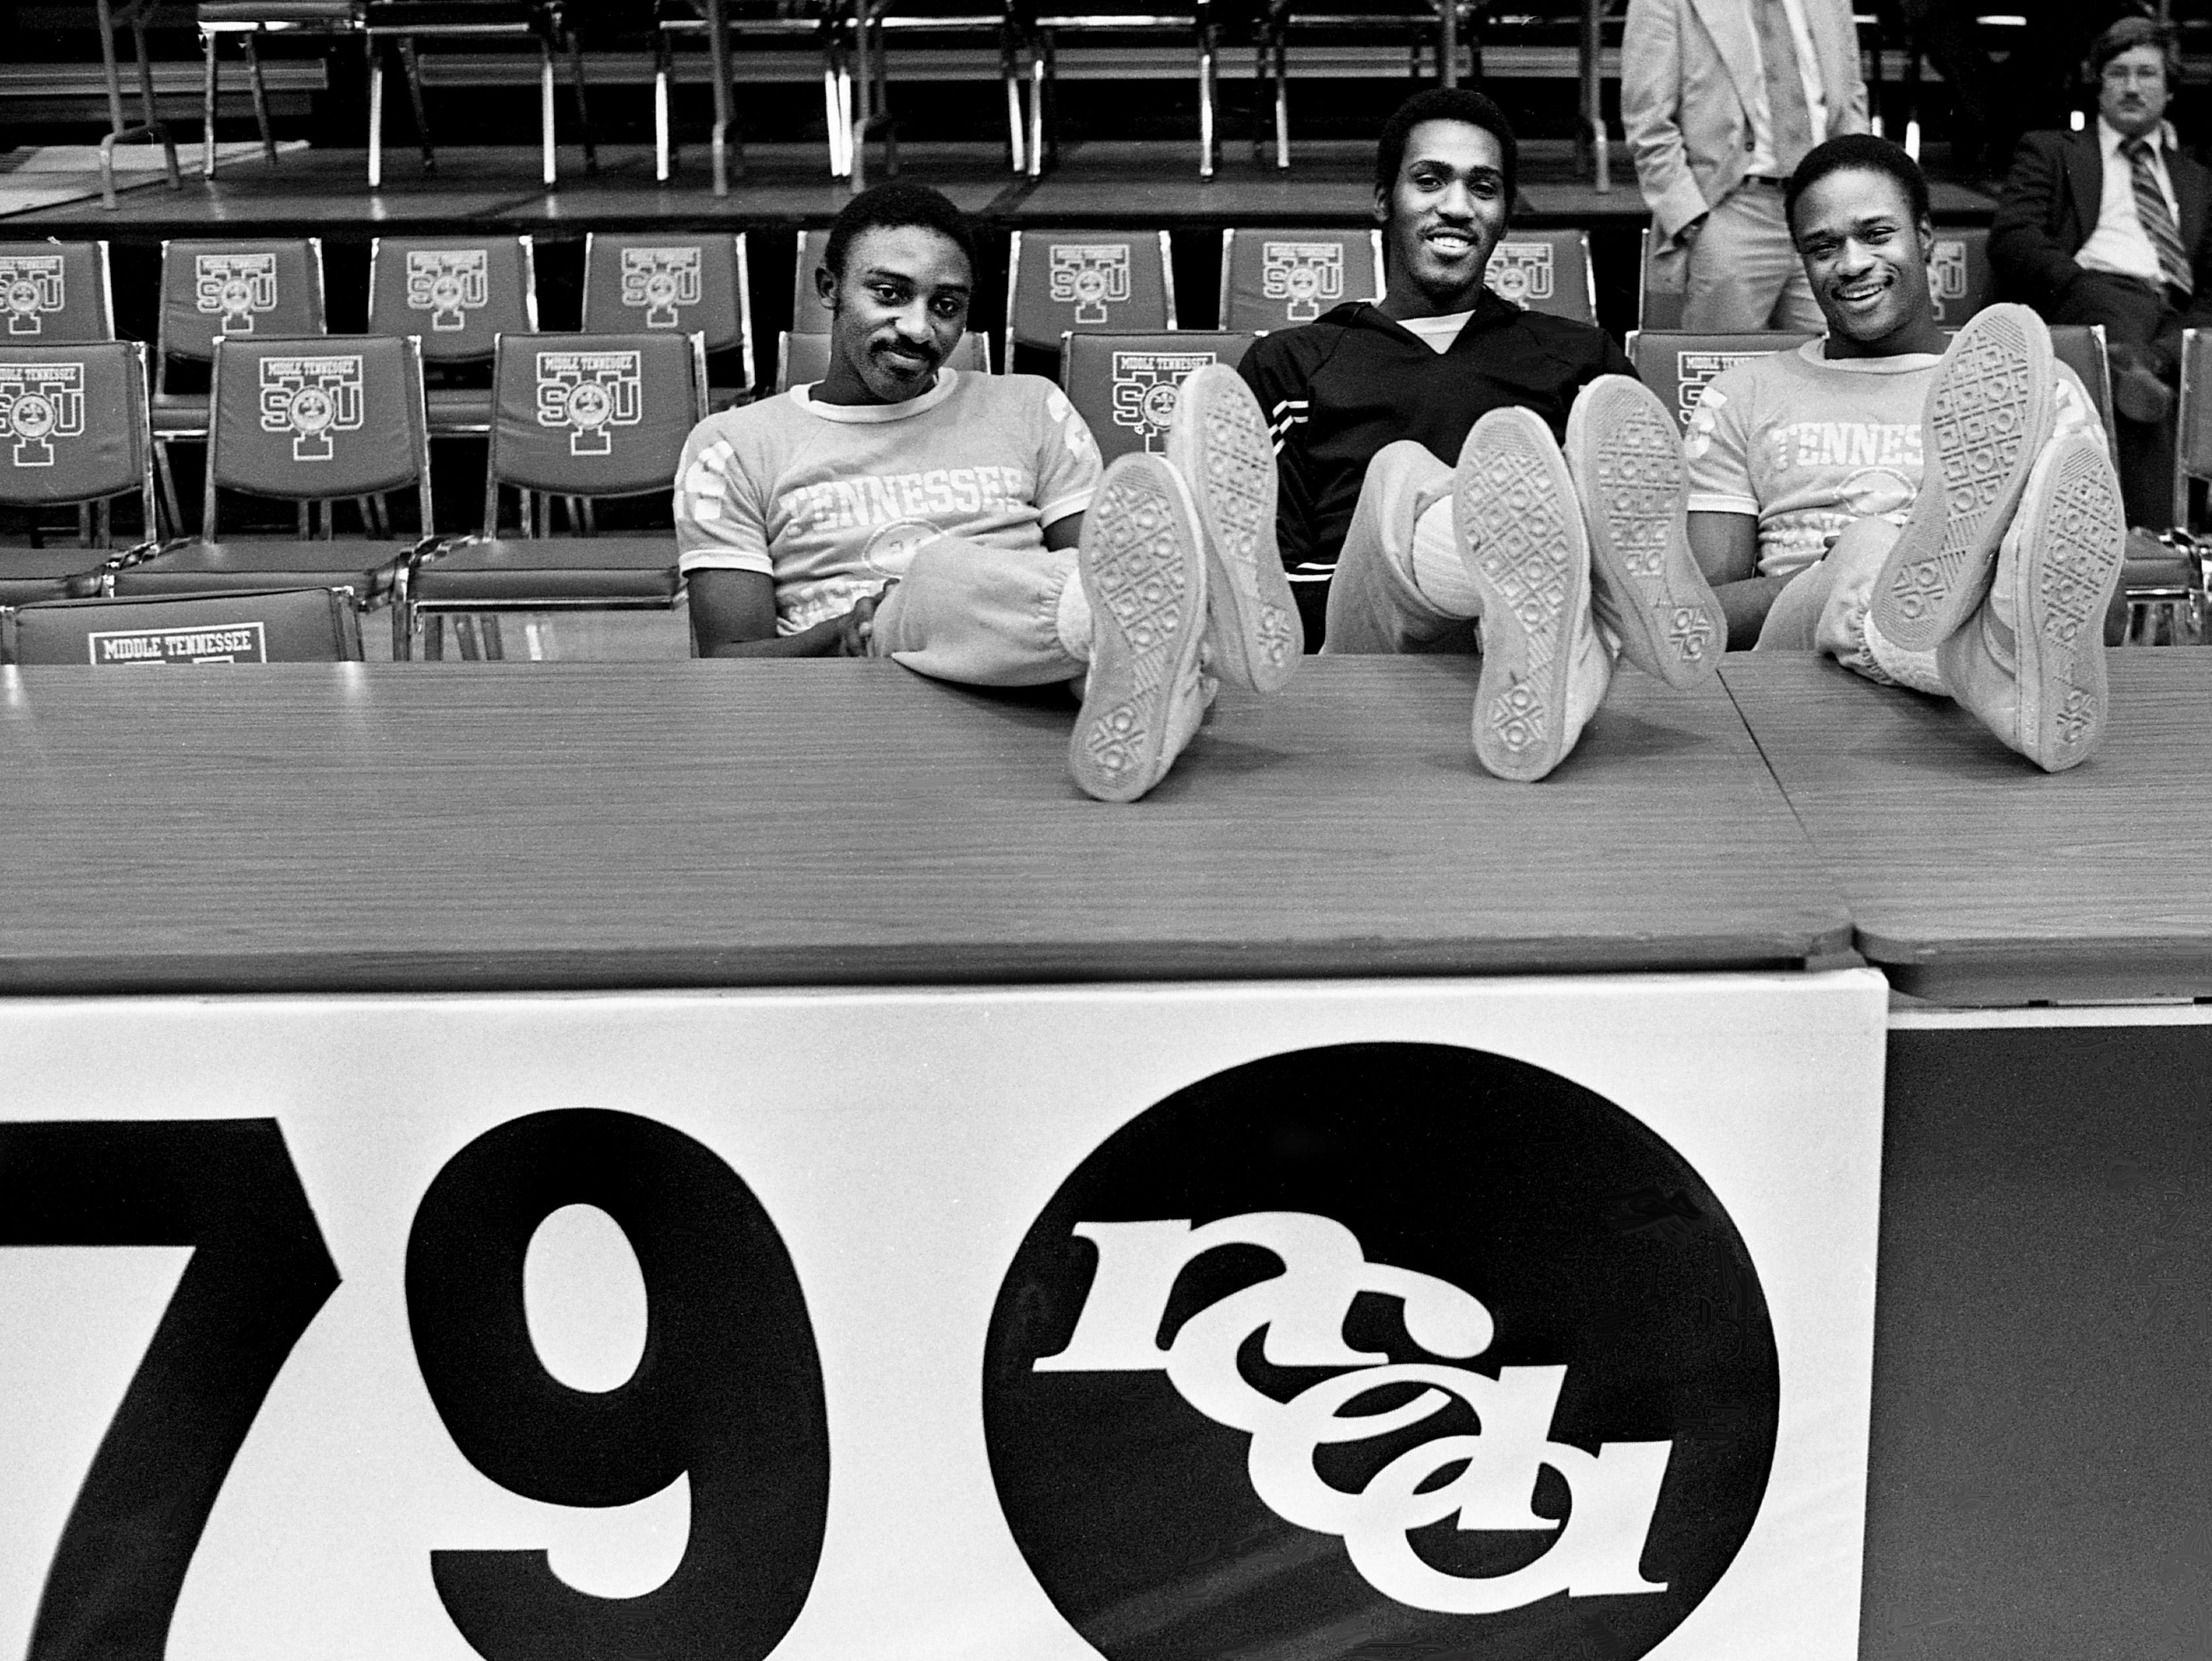 The University of Tennessee Vols basketball team, which includes guard Johnny Darden, left, forward Reggie Johnson and forward Terry Crosby, have a lot of sole heading into the NCAA Mideast Regional competition at the Murphy Center at MTSU in Murfreesboro. They are waiting for the start of practice March 8, 1979.